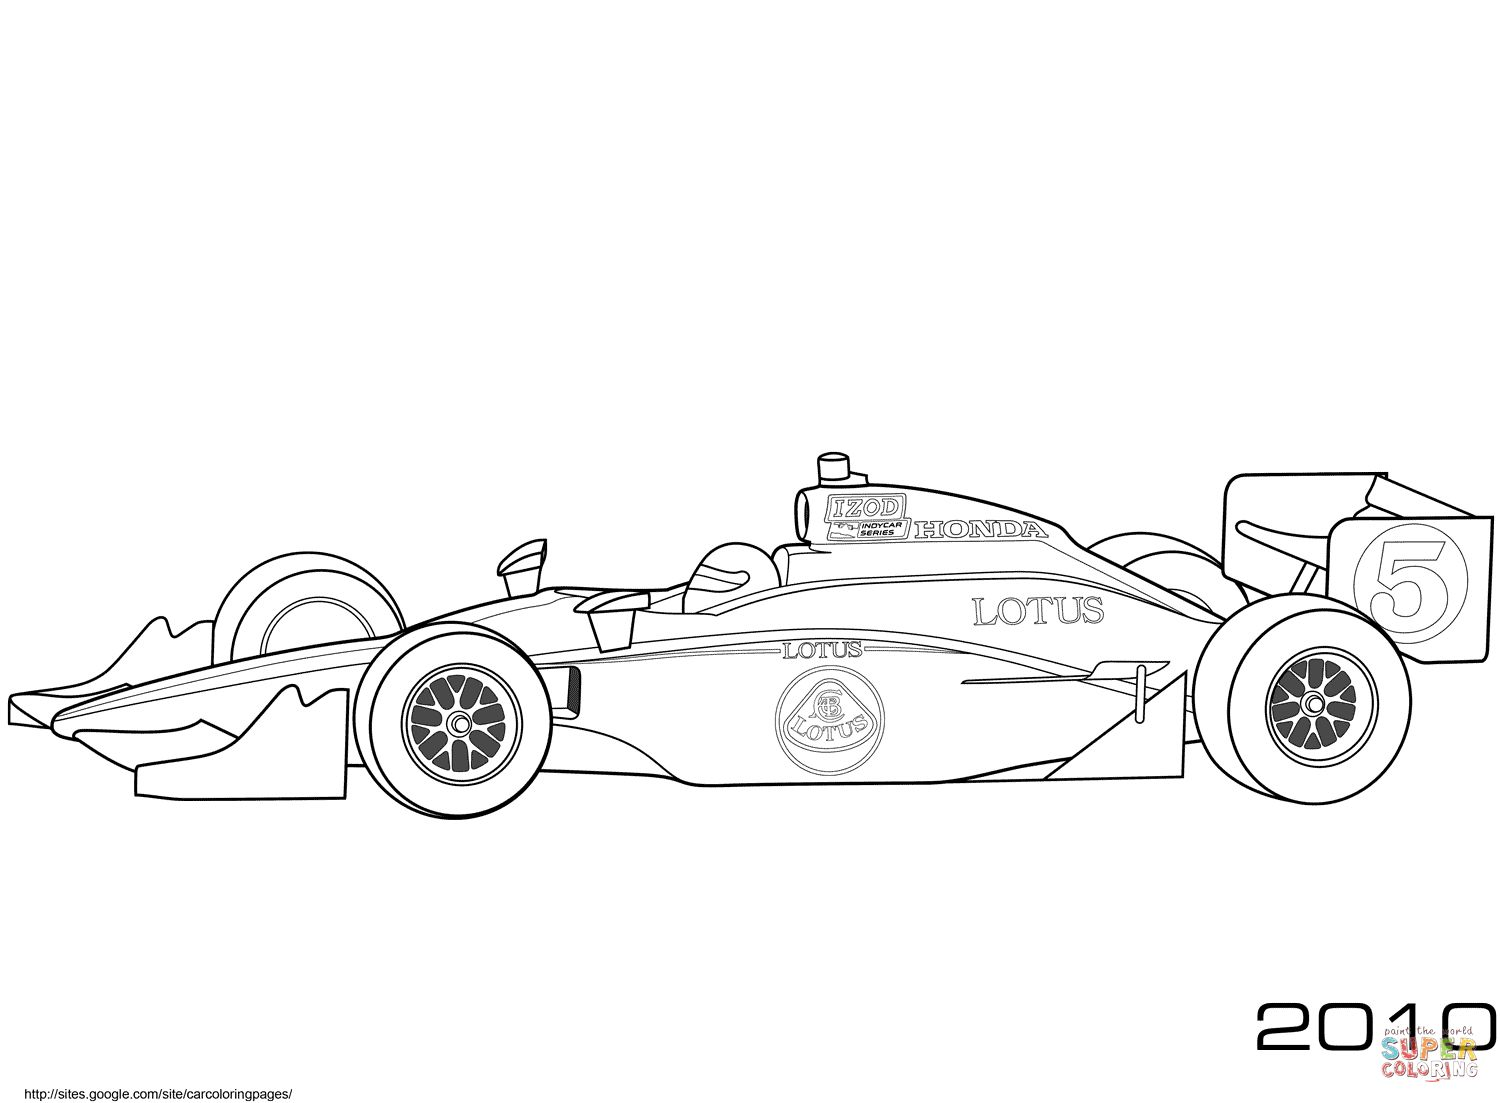 The Mesmerizing Blank Race Car Coloring Pages Intended For Blank Race Car Templates Digital Photogra Race Car Coloring Pages Cars Coloring Pages Coloring Pages